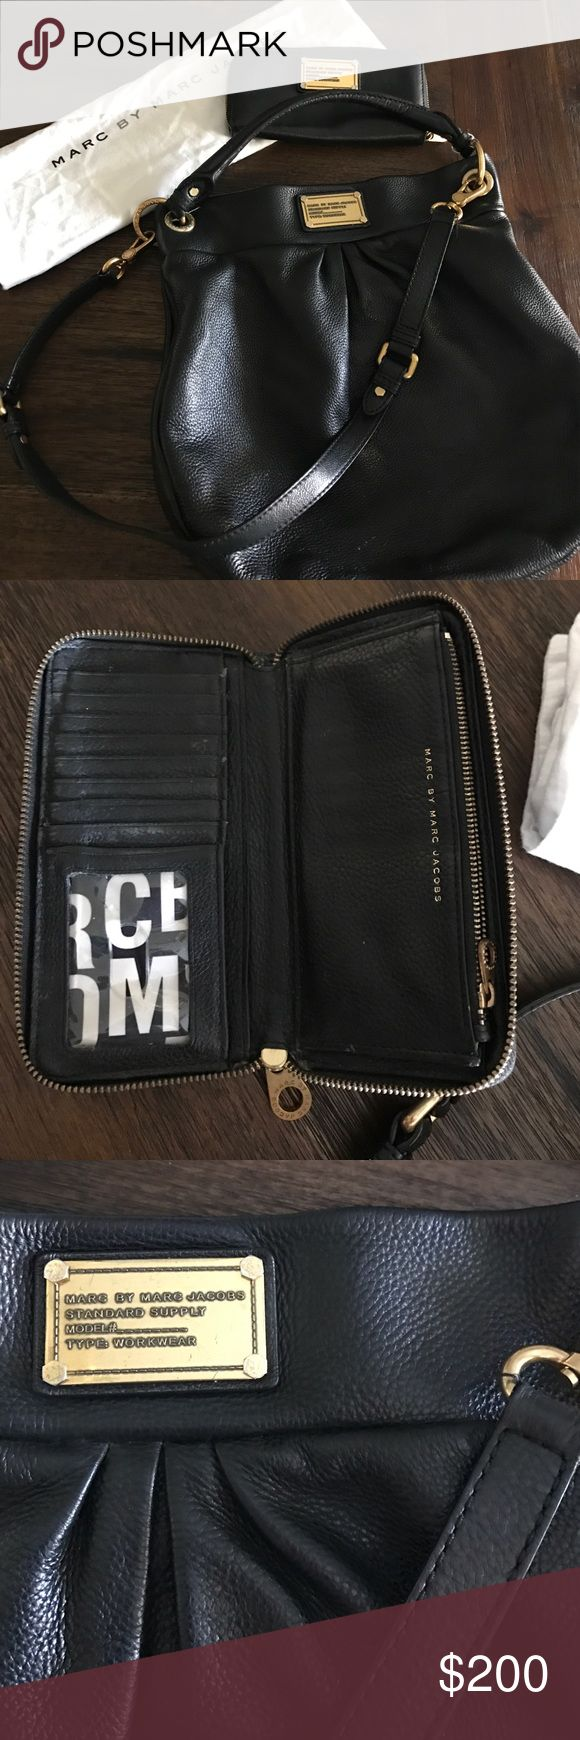 Marc Jacobs Hobo Purse with Wallet Marc Jacobs Hobo Purse with matching Wallet. In good pre owned condition. Comes with dust bag. Minor white blemish on bottom of bag. Marc by Marc Jacobs Bags Hobos